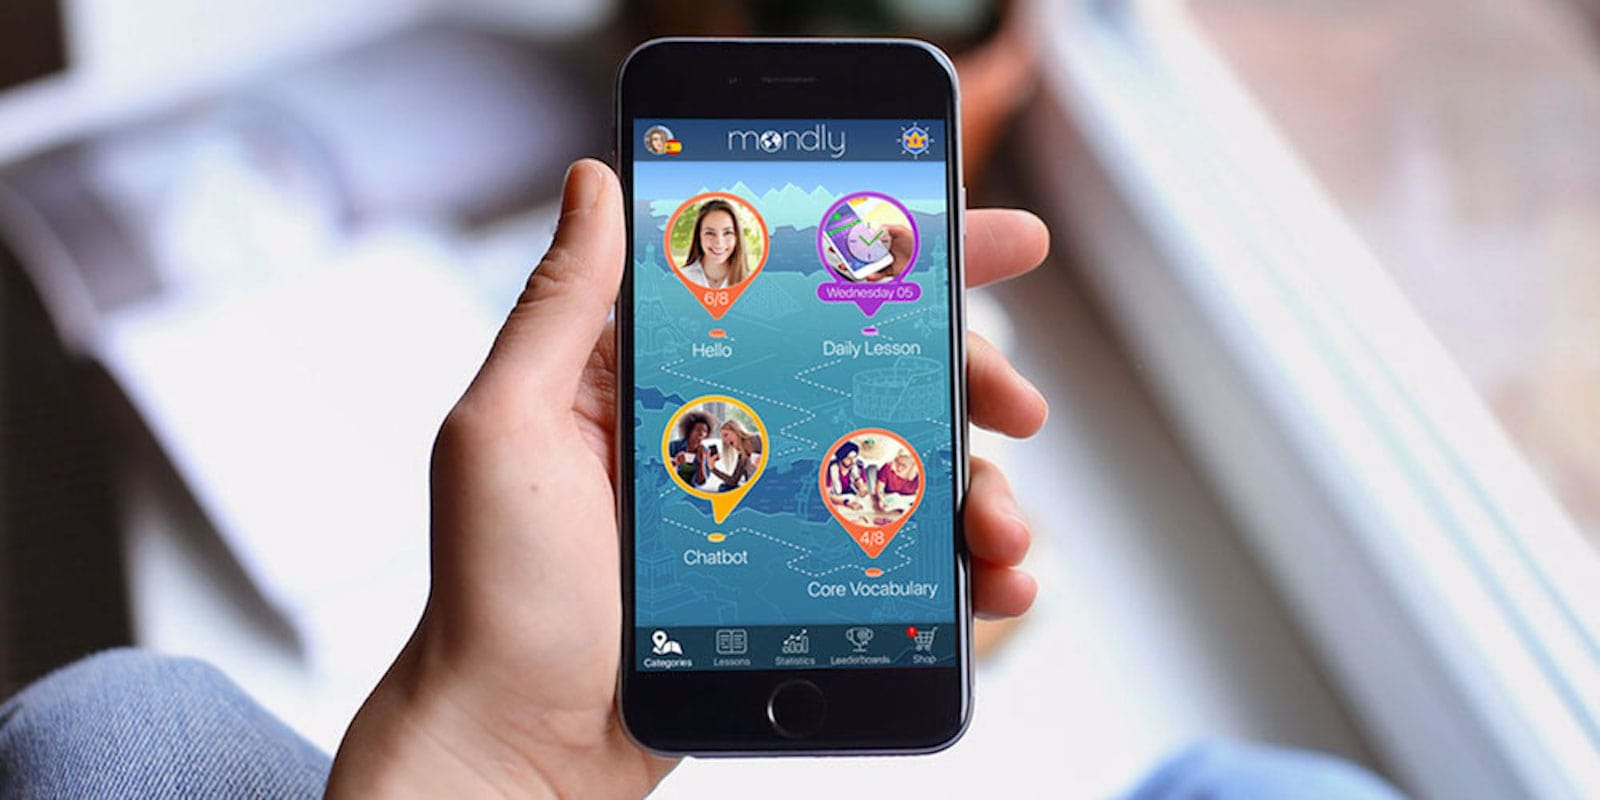 Using speech recognition, native speakers and even AR, this app takes mobile language learning to a new level.